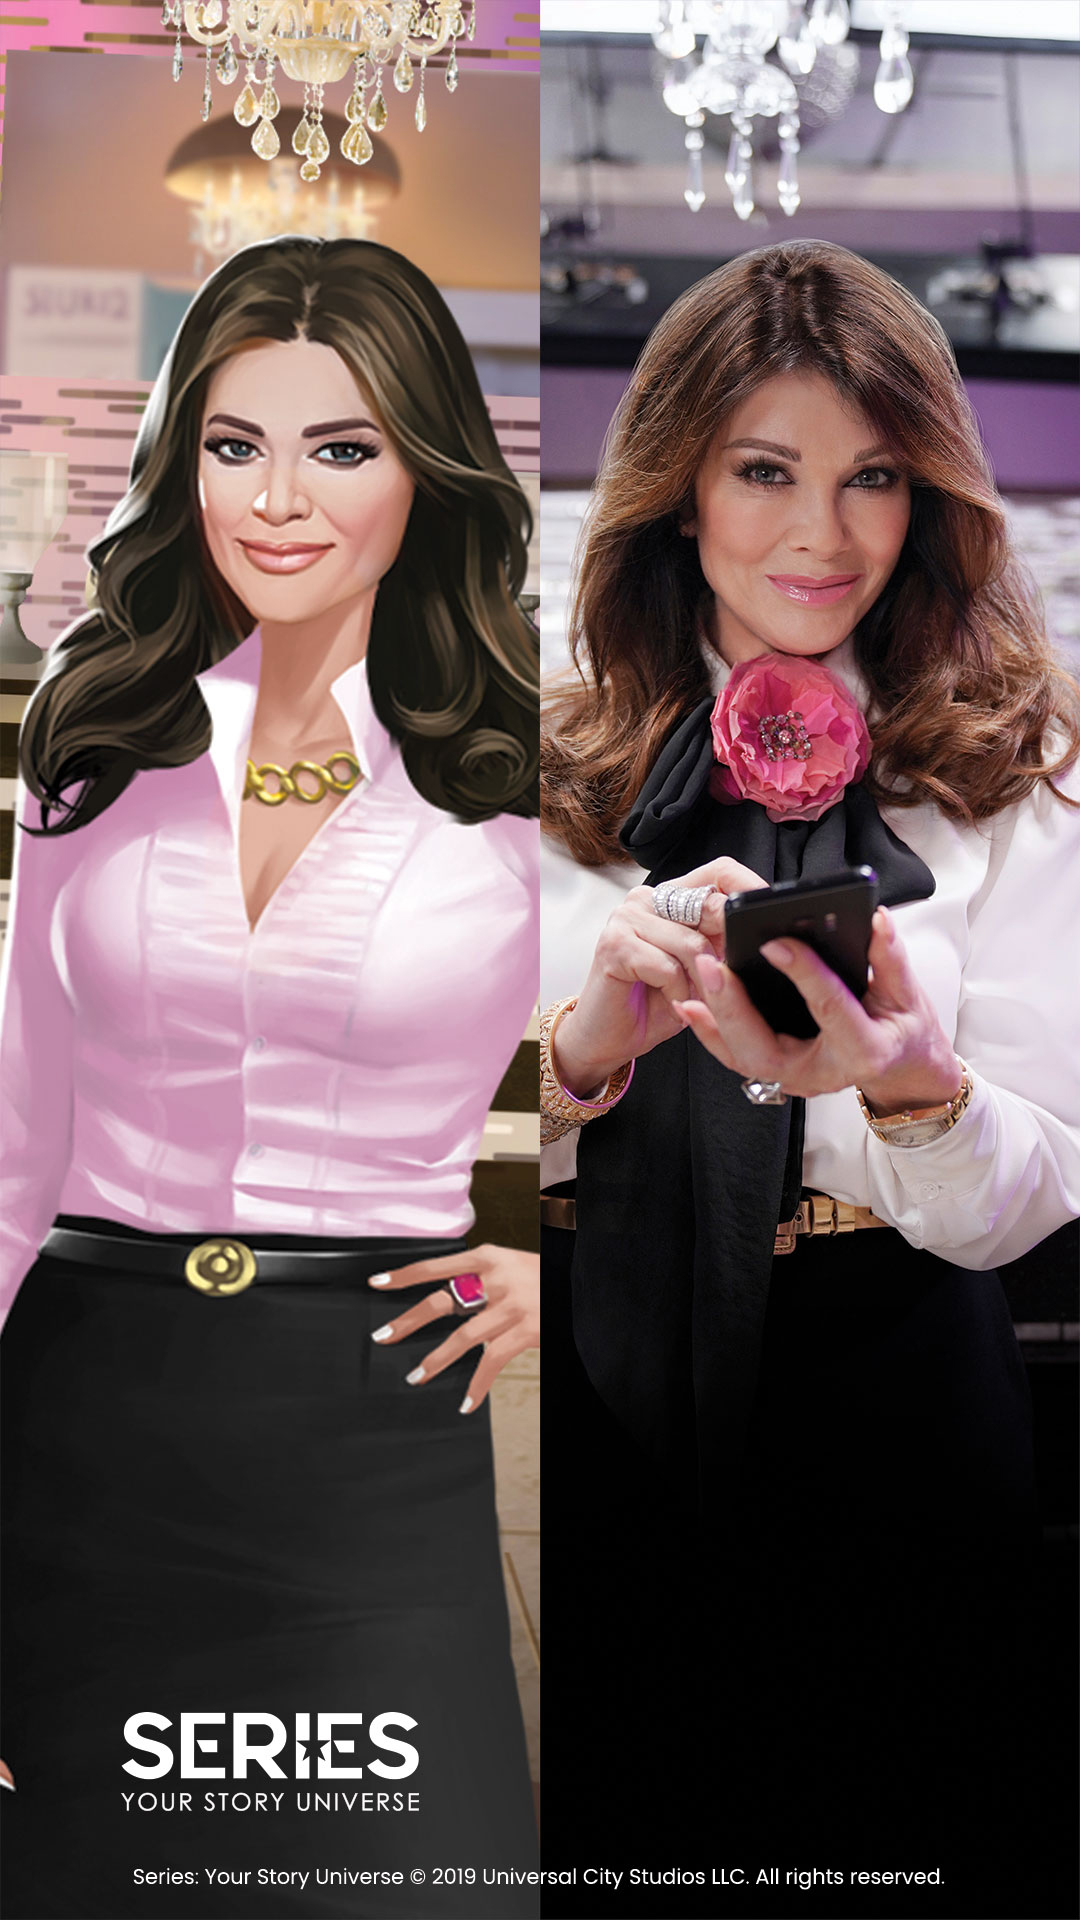 Mario Lopez Bayside High New Mobile Game - Lisa Vanderpump for 'Series: Your Story Universe.